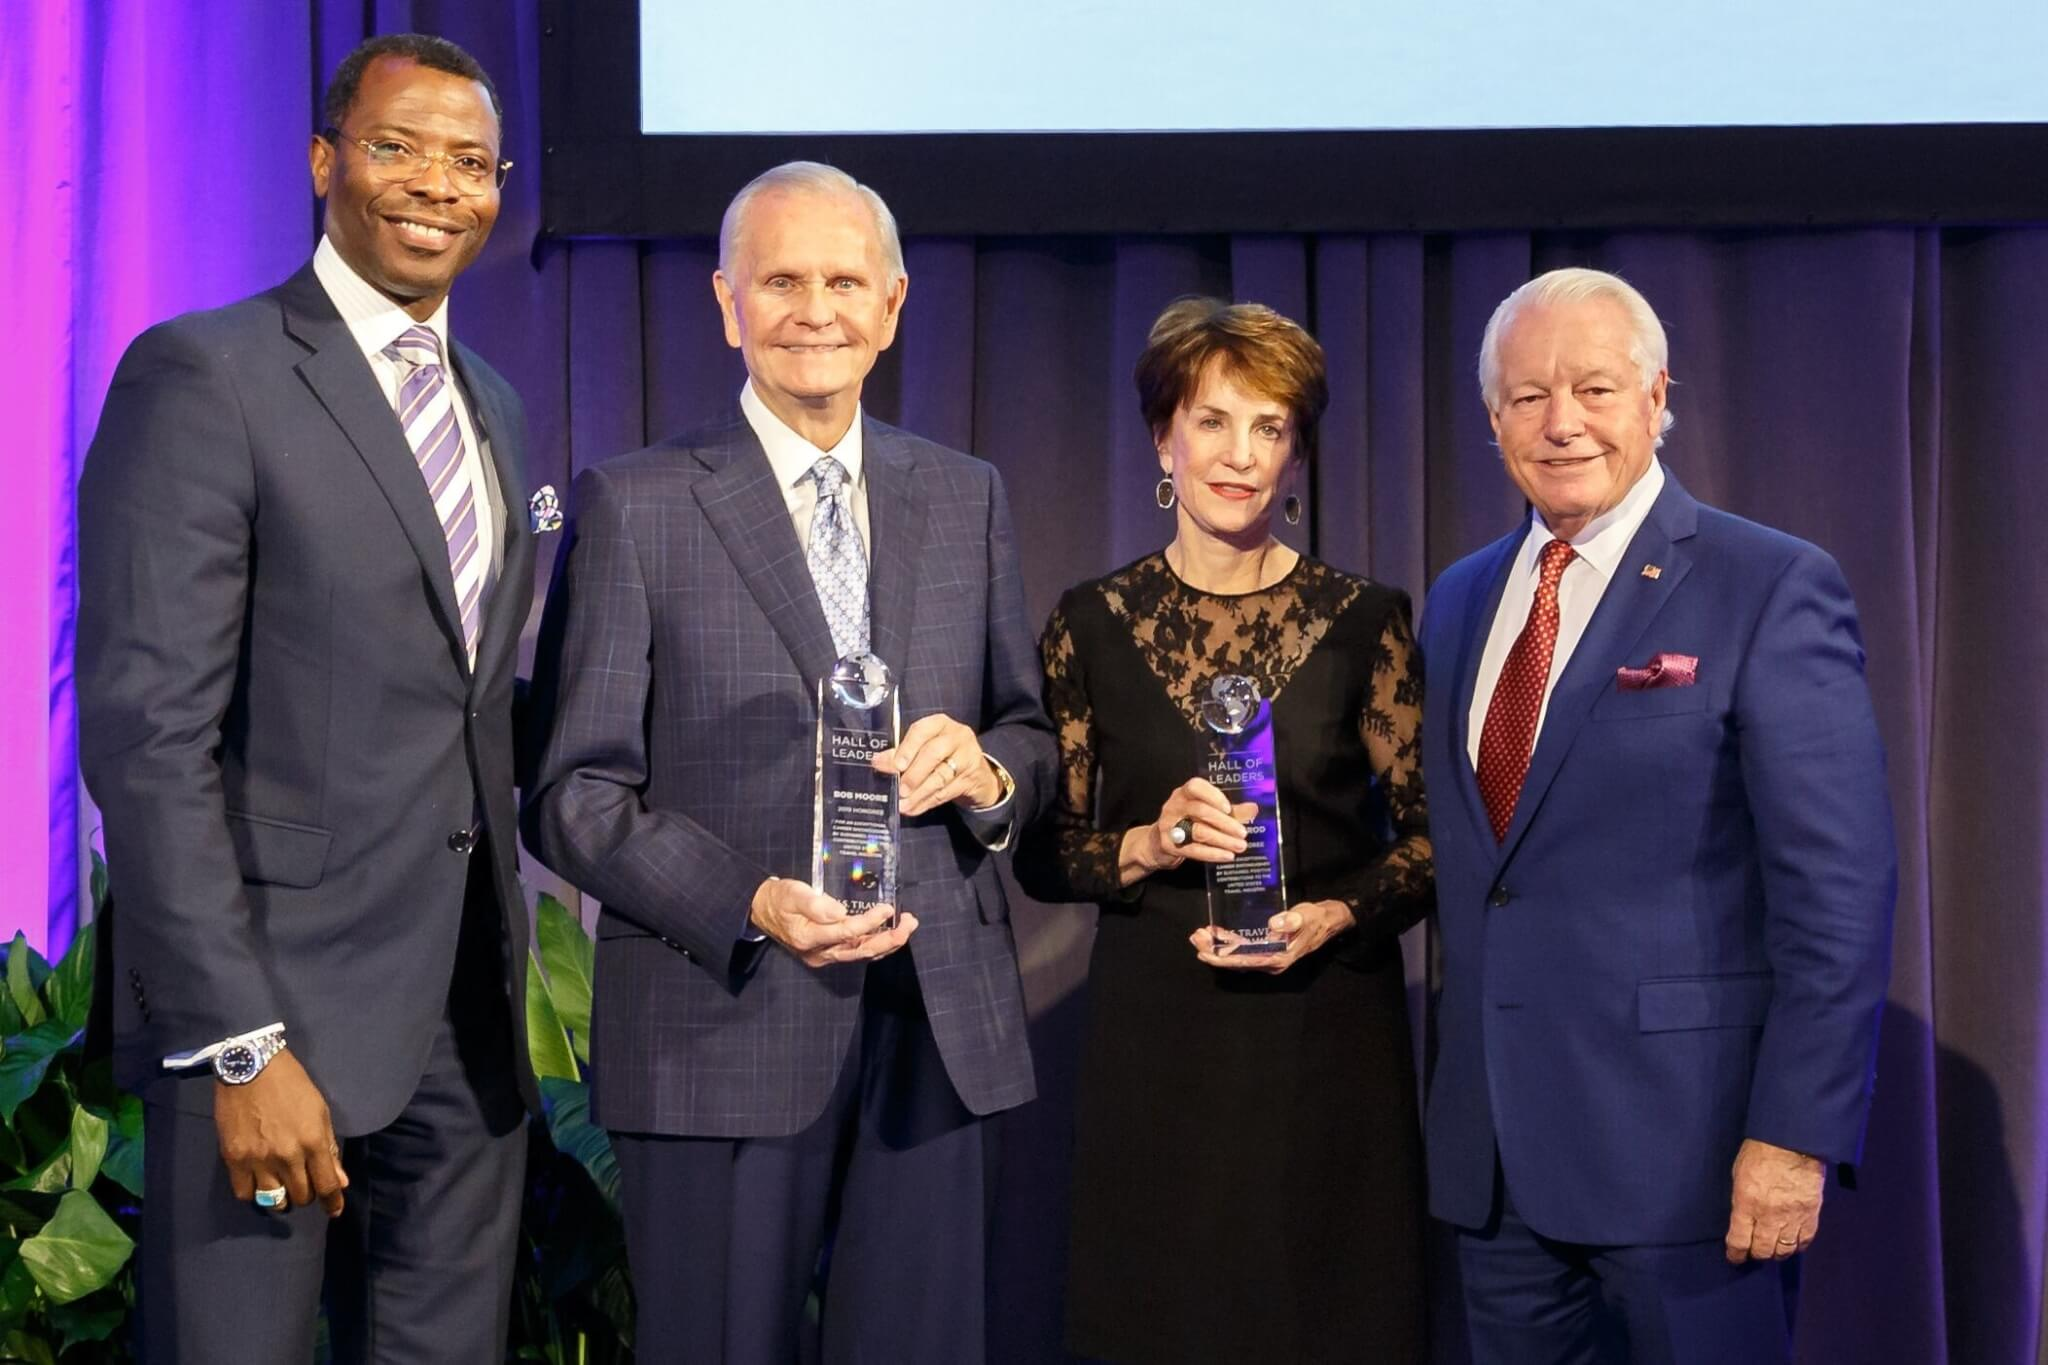 Bob Moore and Nancy Novogrod inducted into U.S. Travel Hall of Leaders